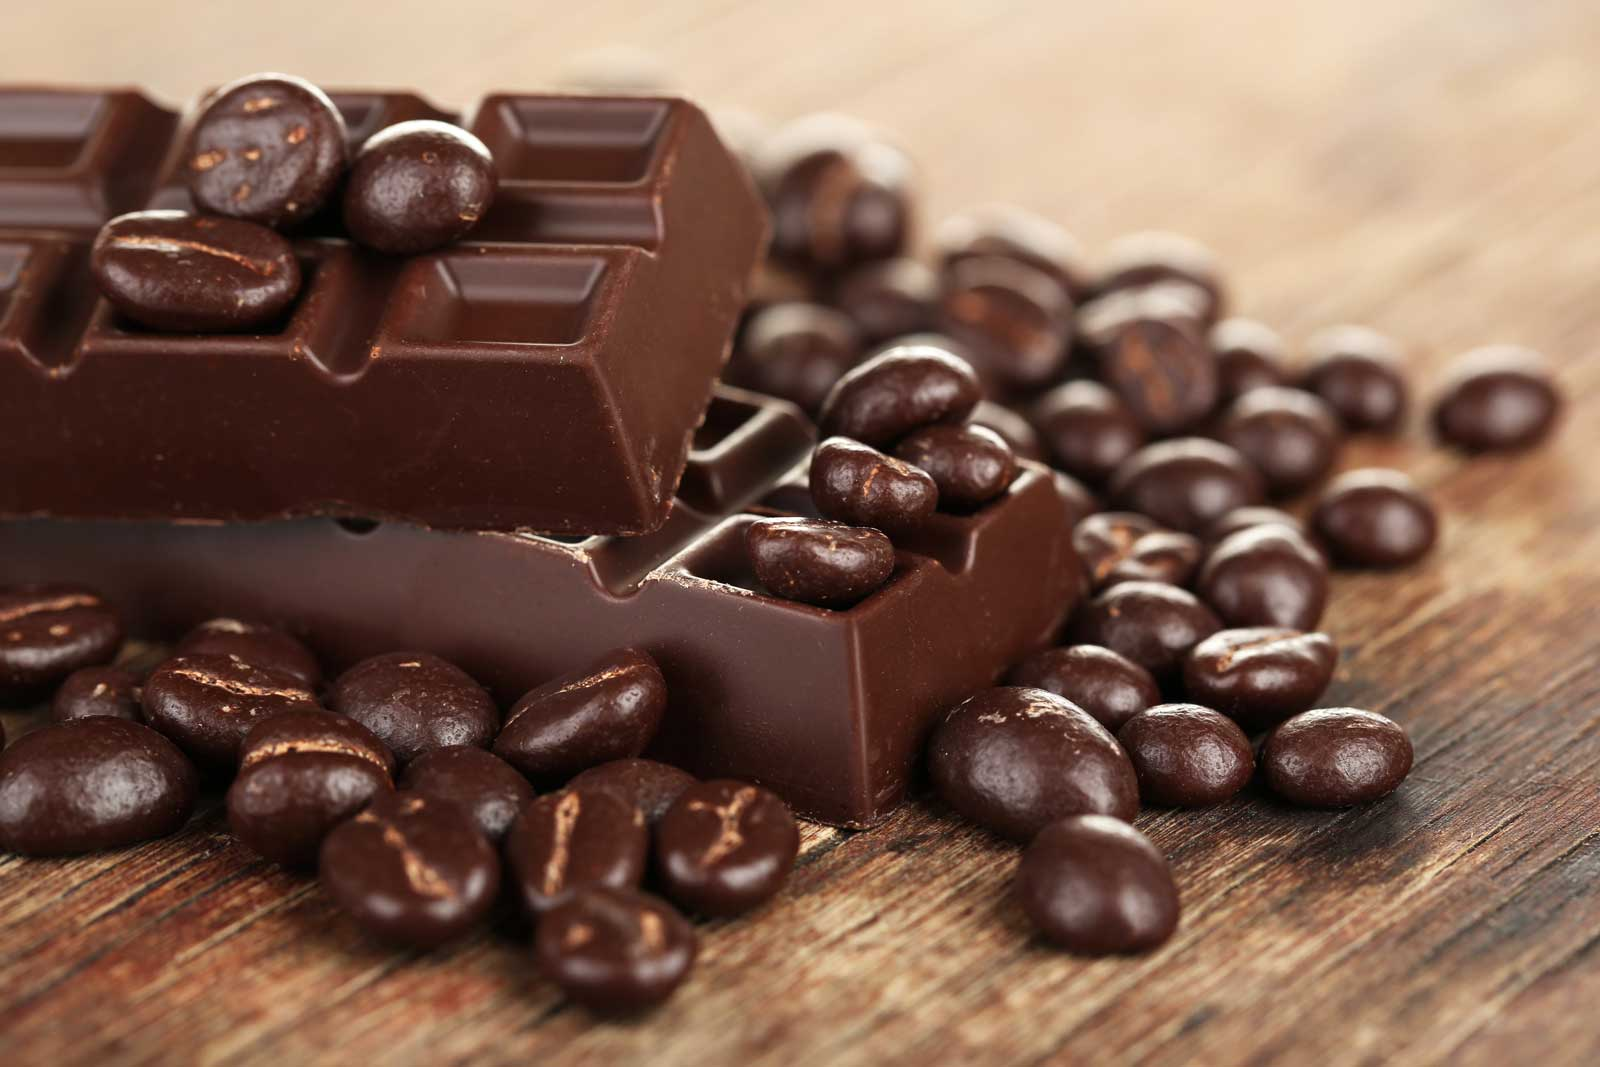 Can Eating Chocolate be Good for You?